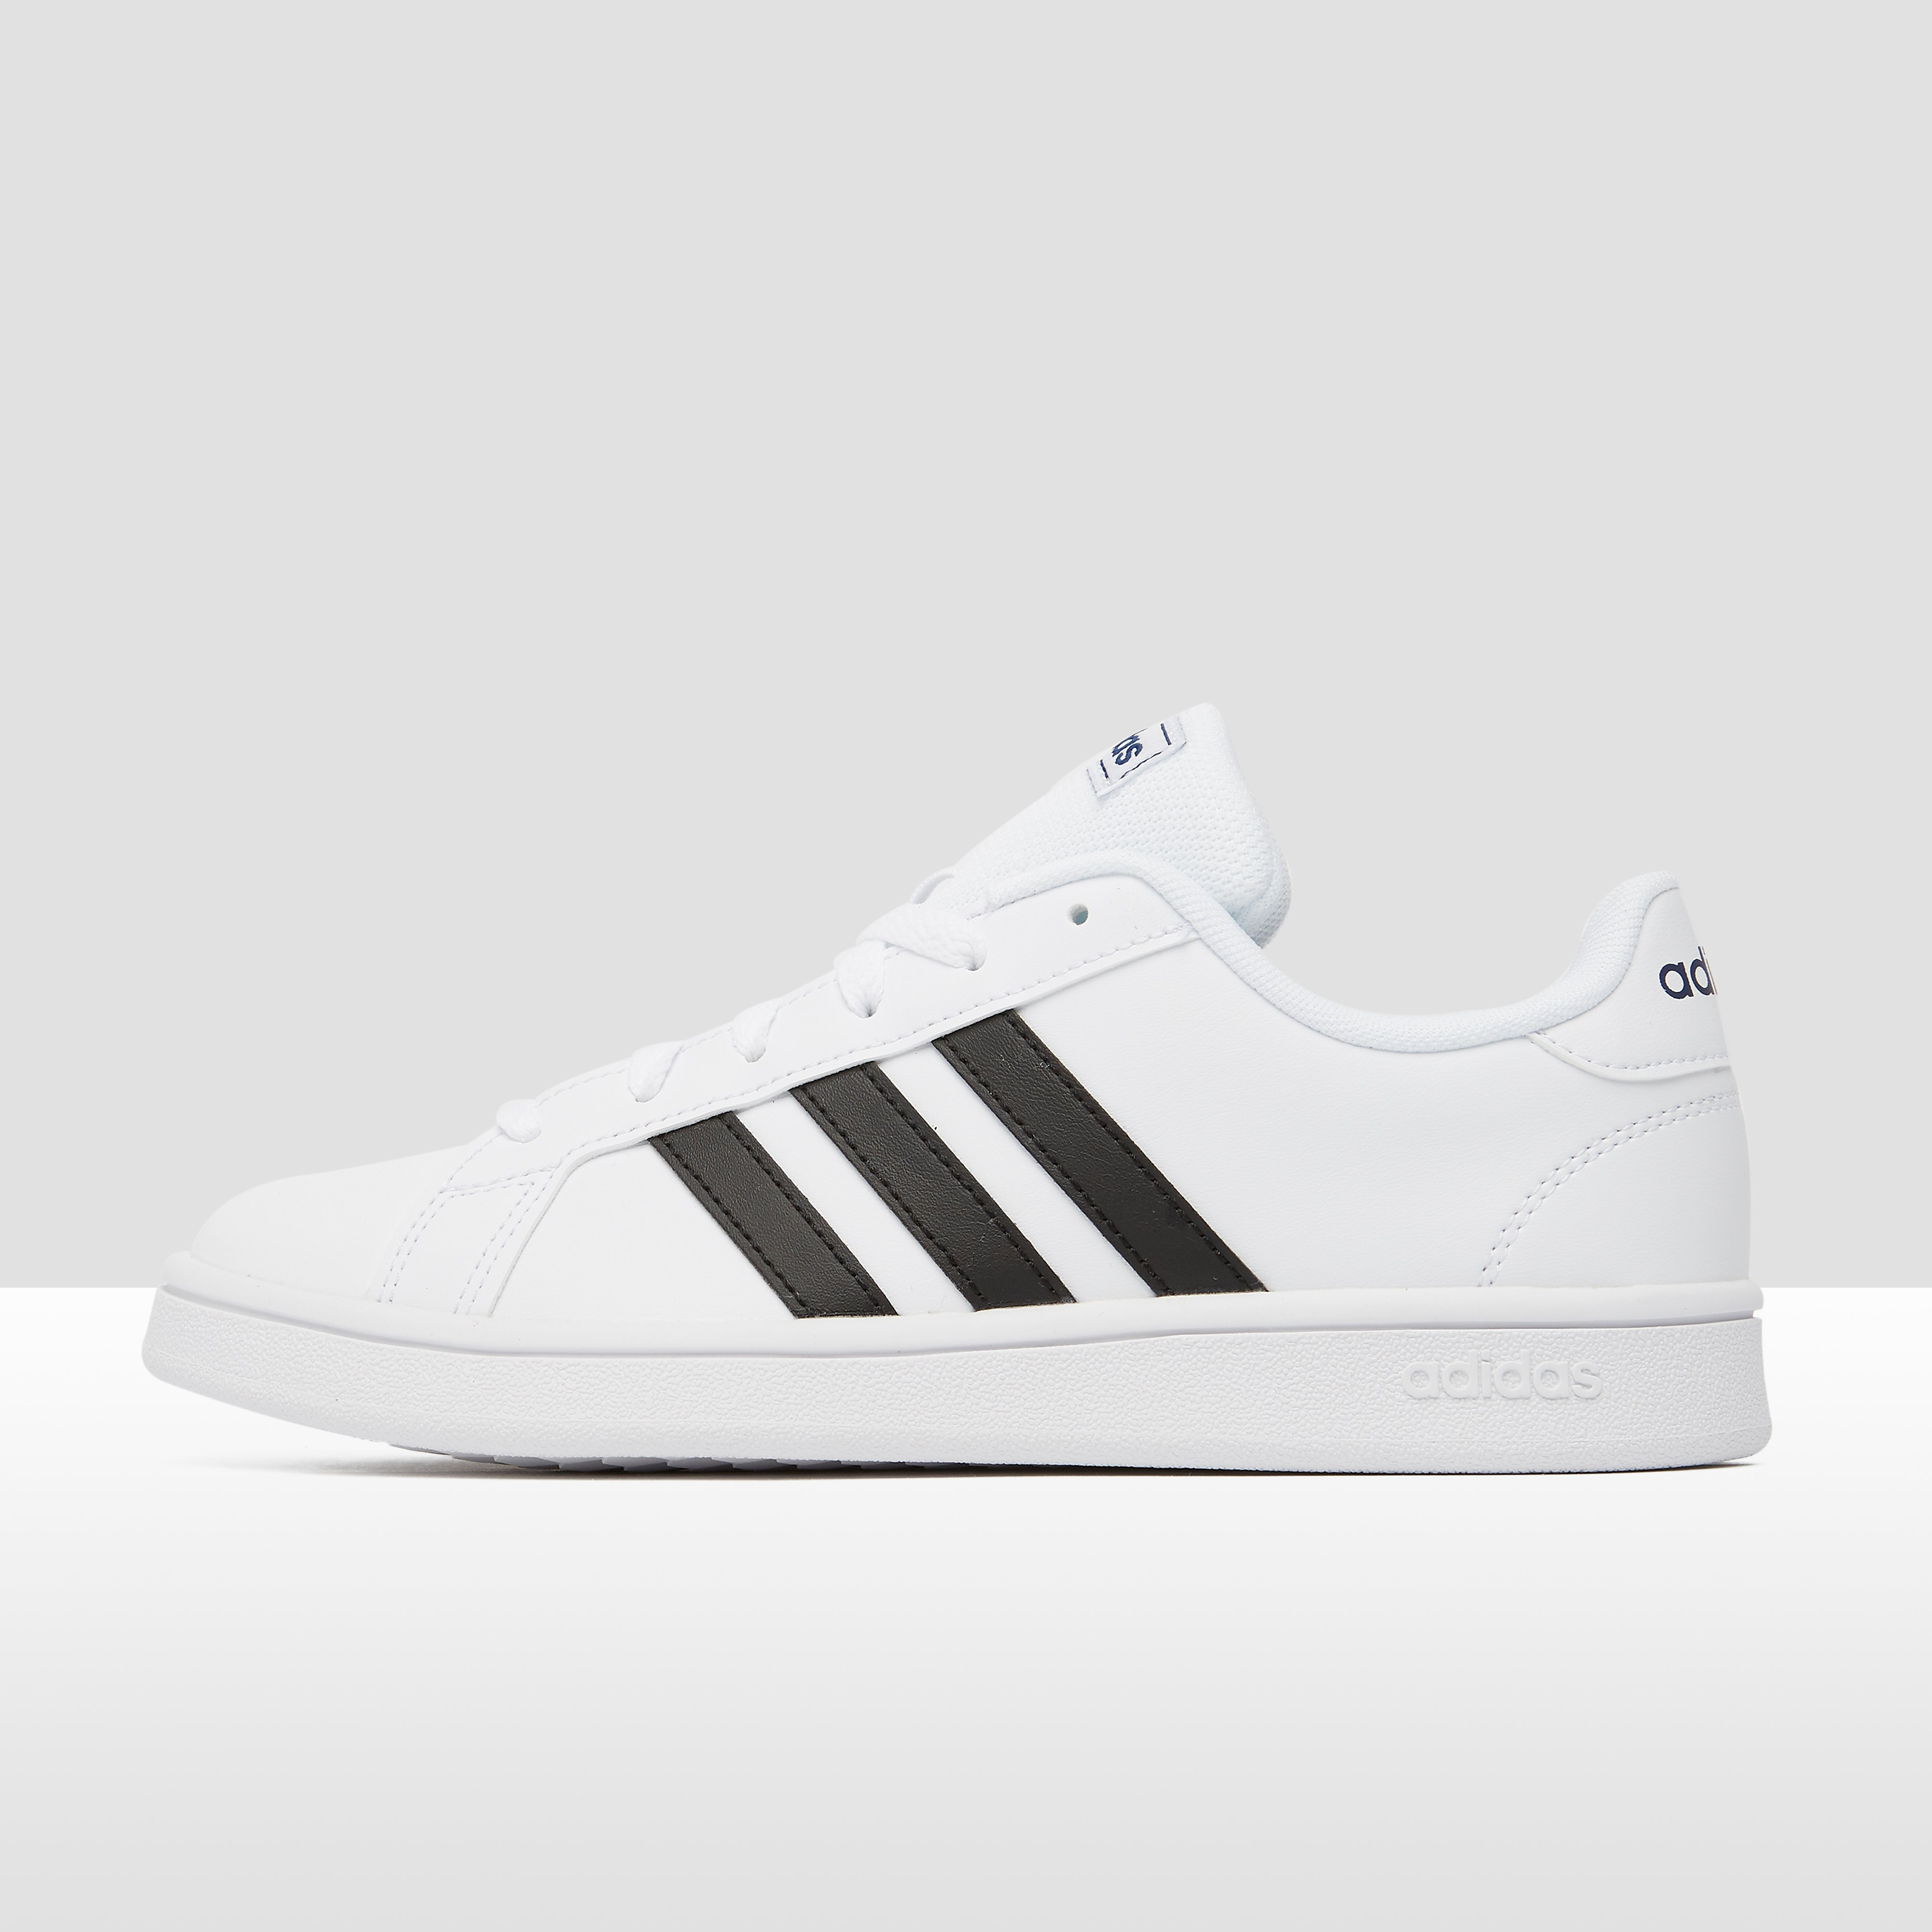 adidas Grand court base sneakers wit/zwart dames Dames